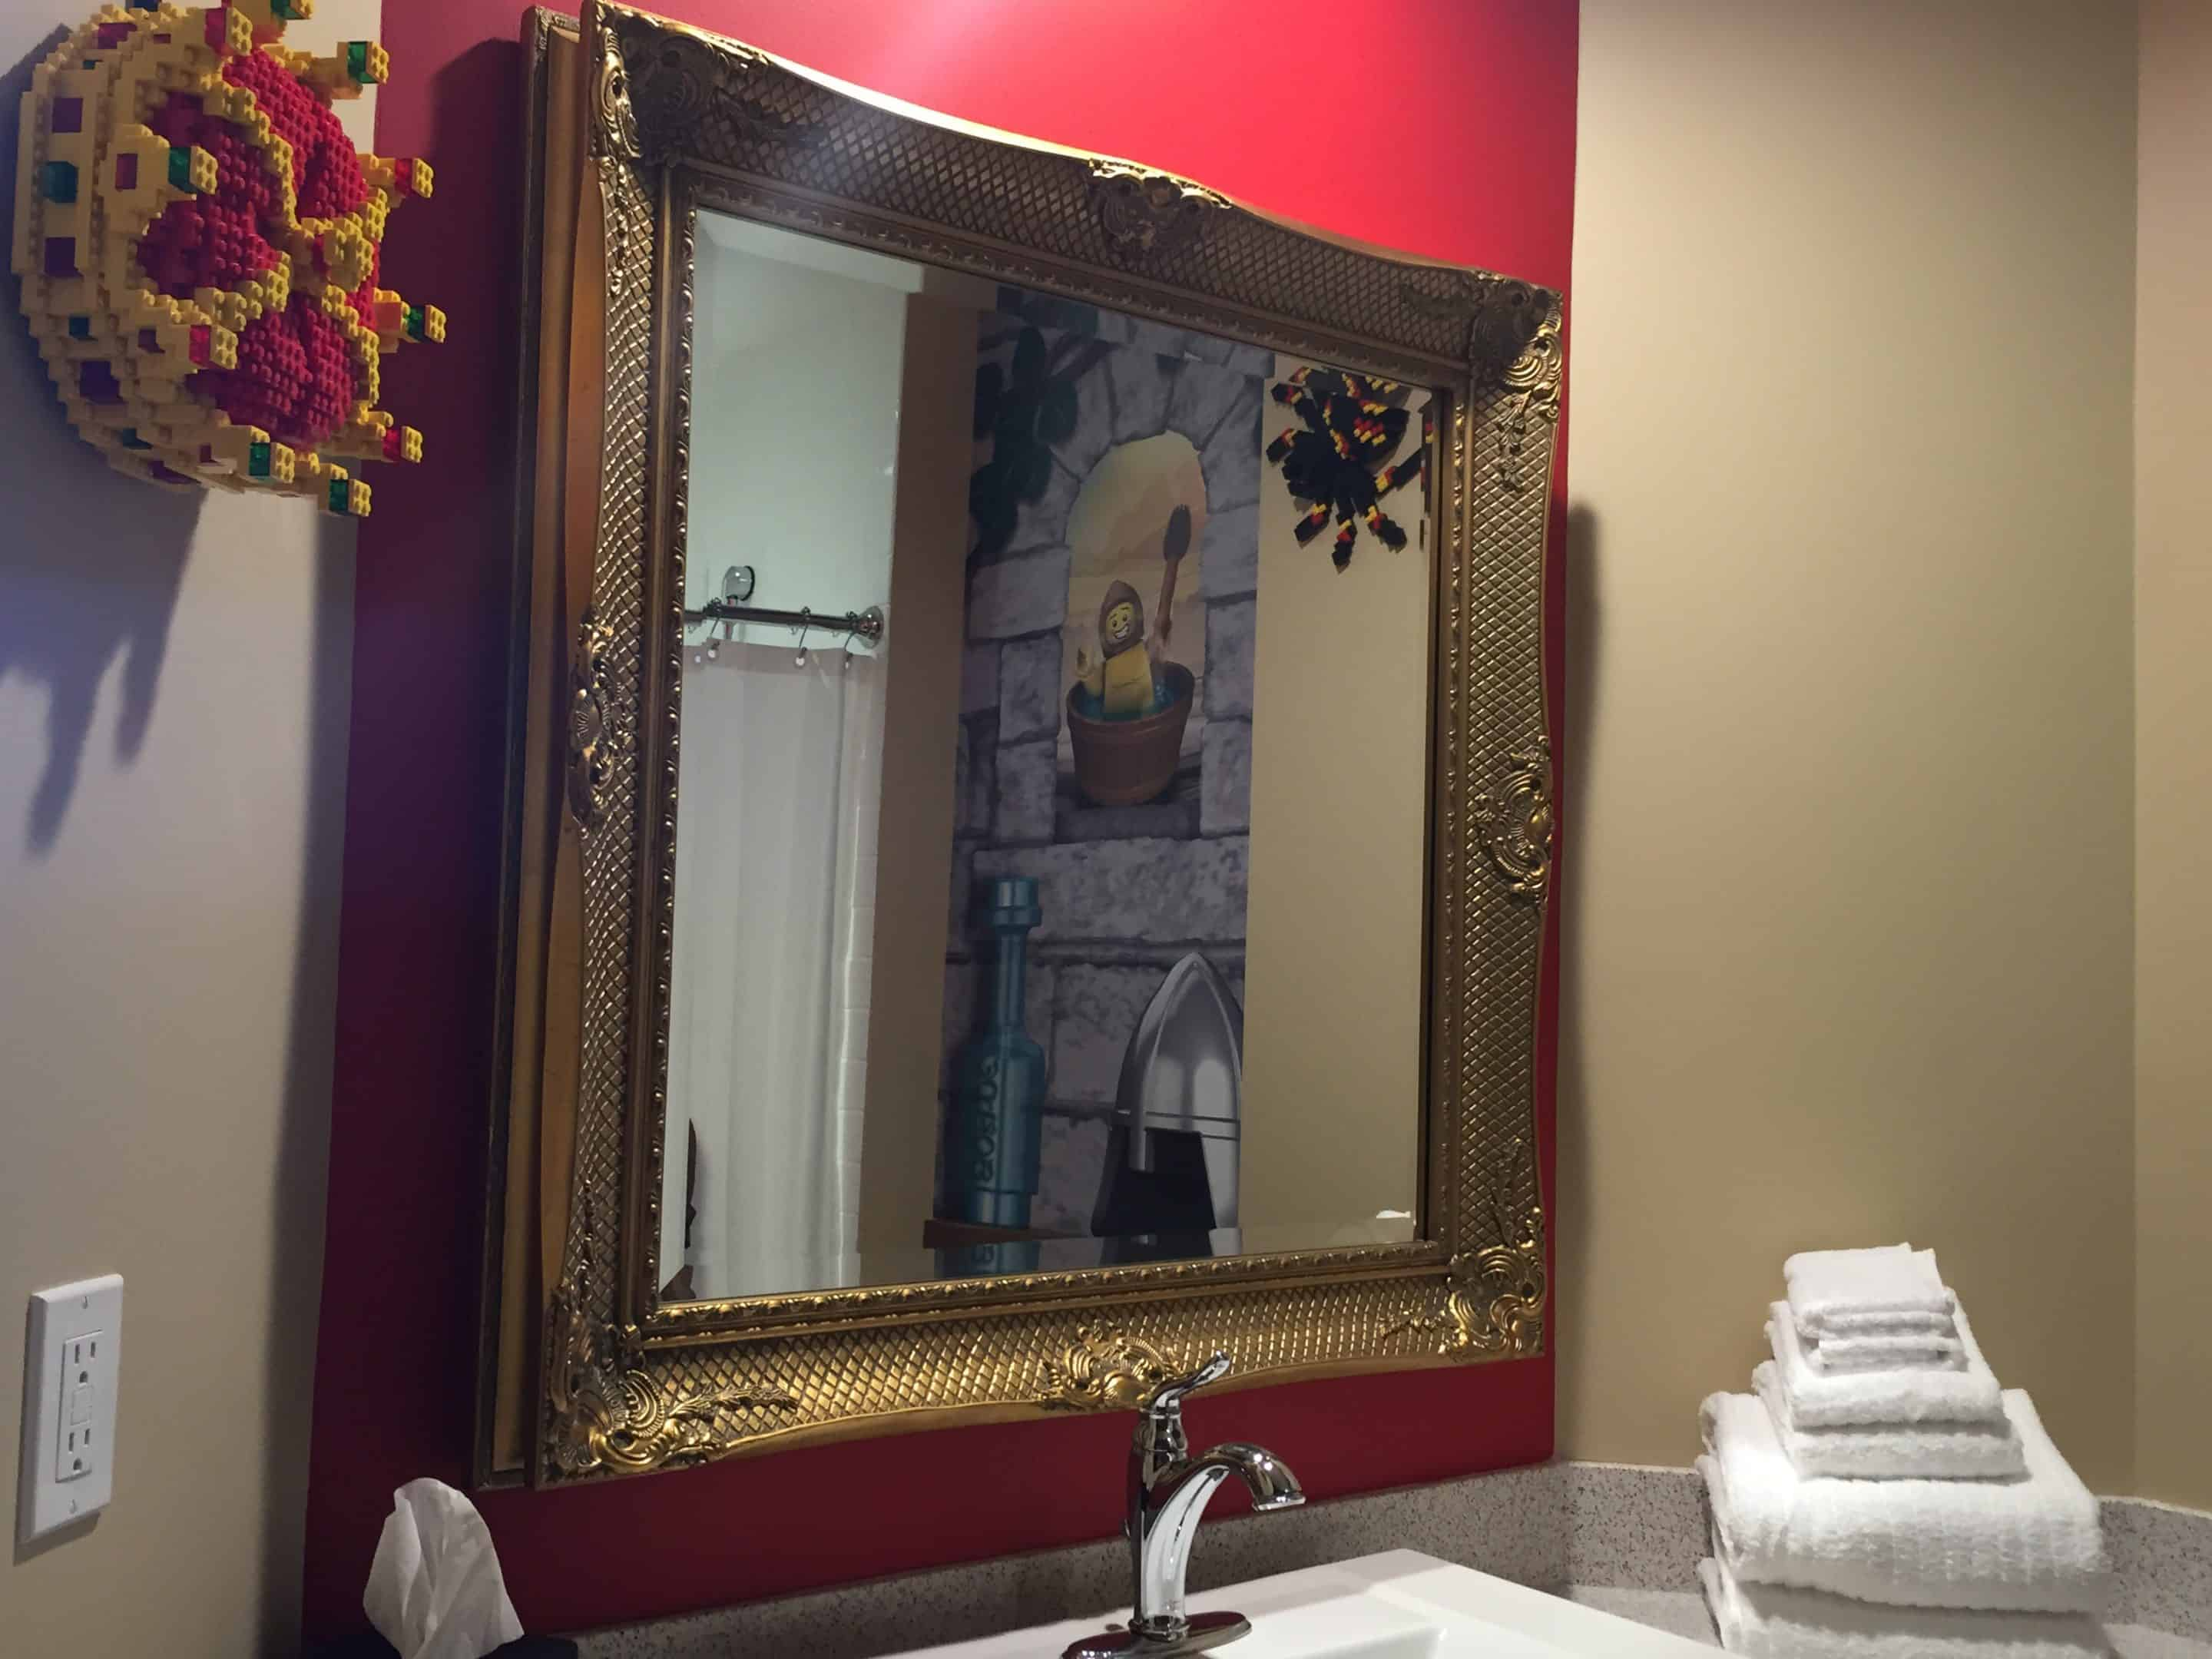 Legoland Hotel Bathroom